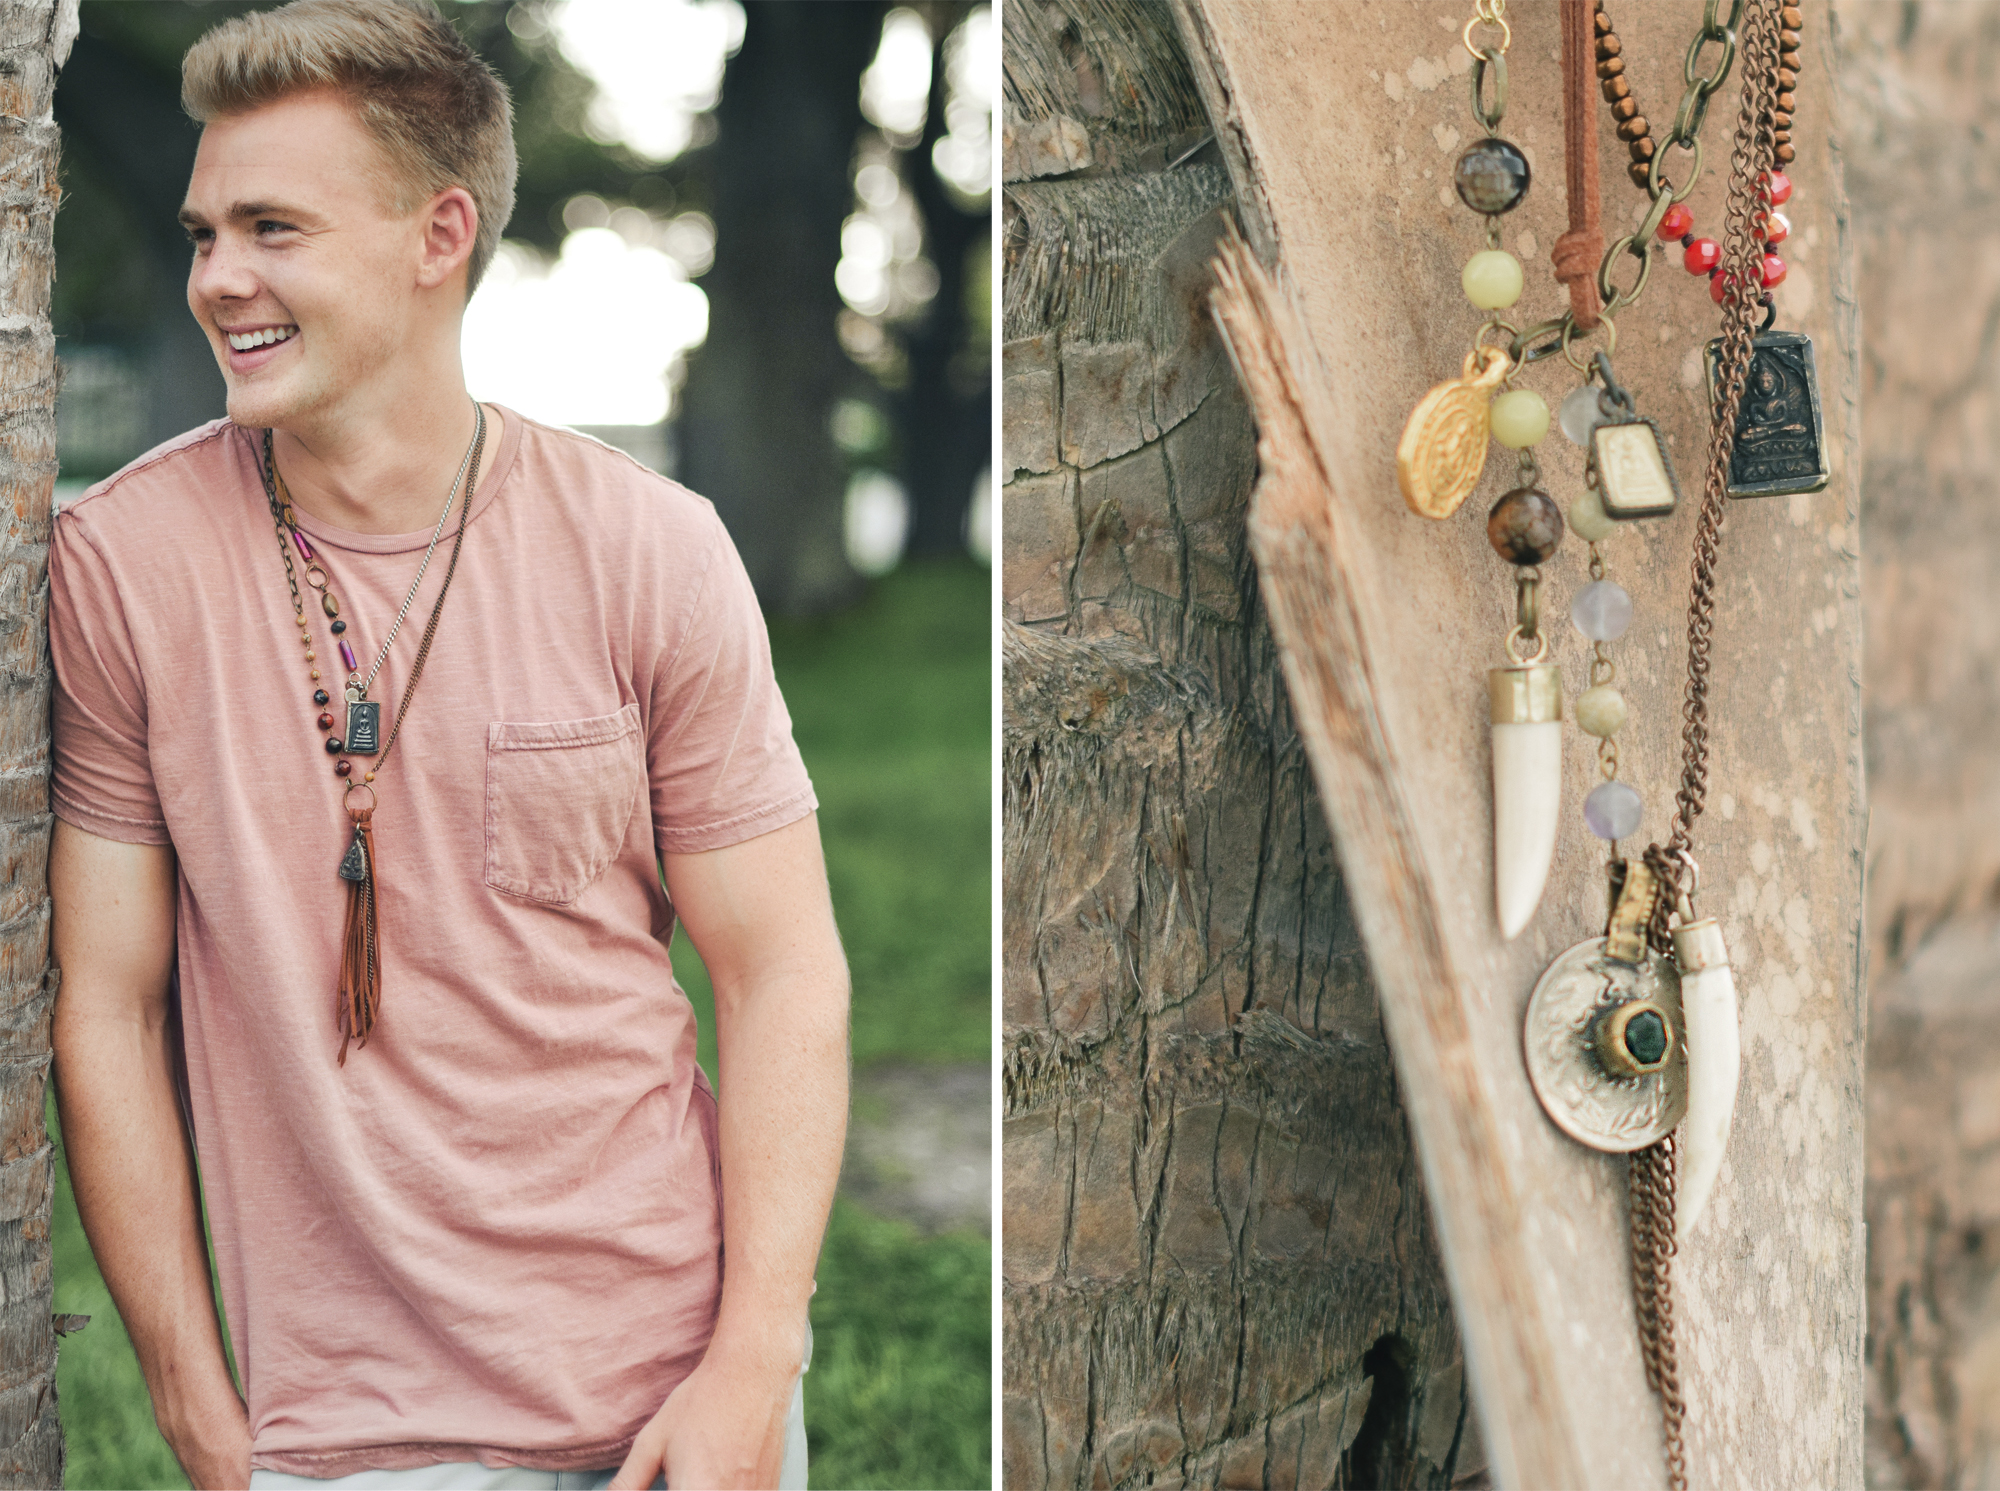 Model: Ryan Folliard - Boho men's jewelry by Quiet Lion Creations